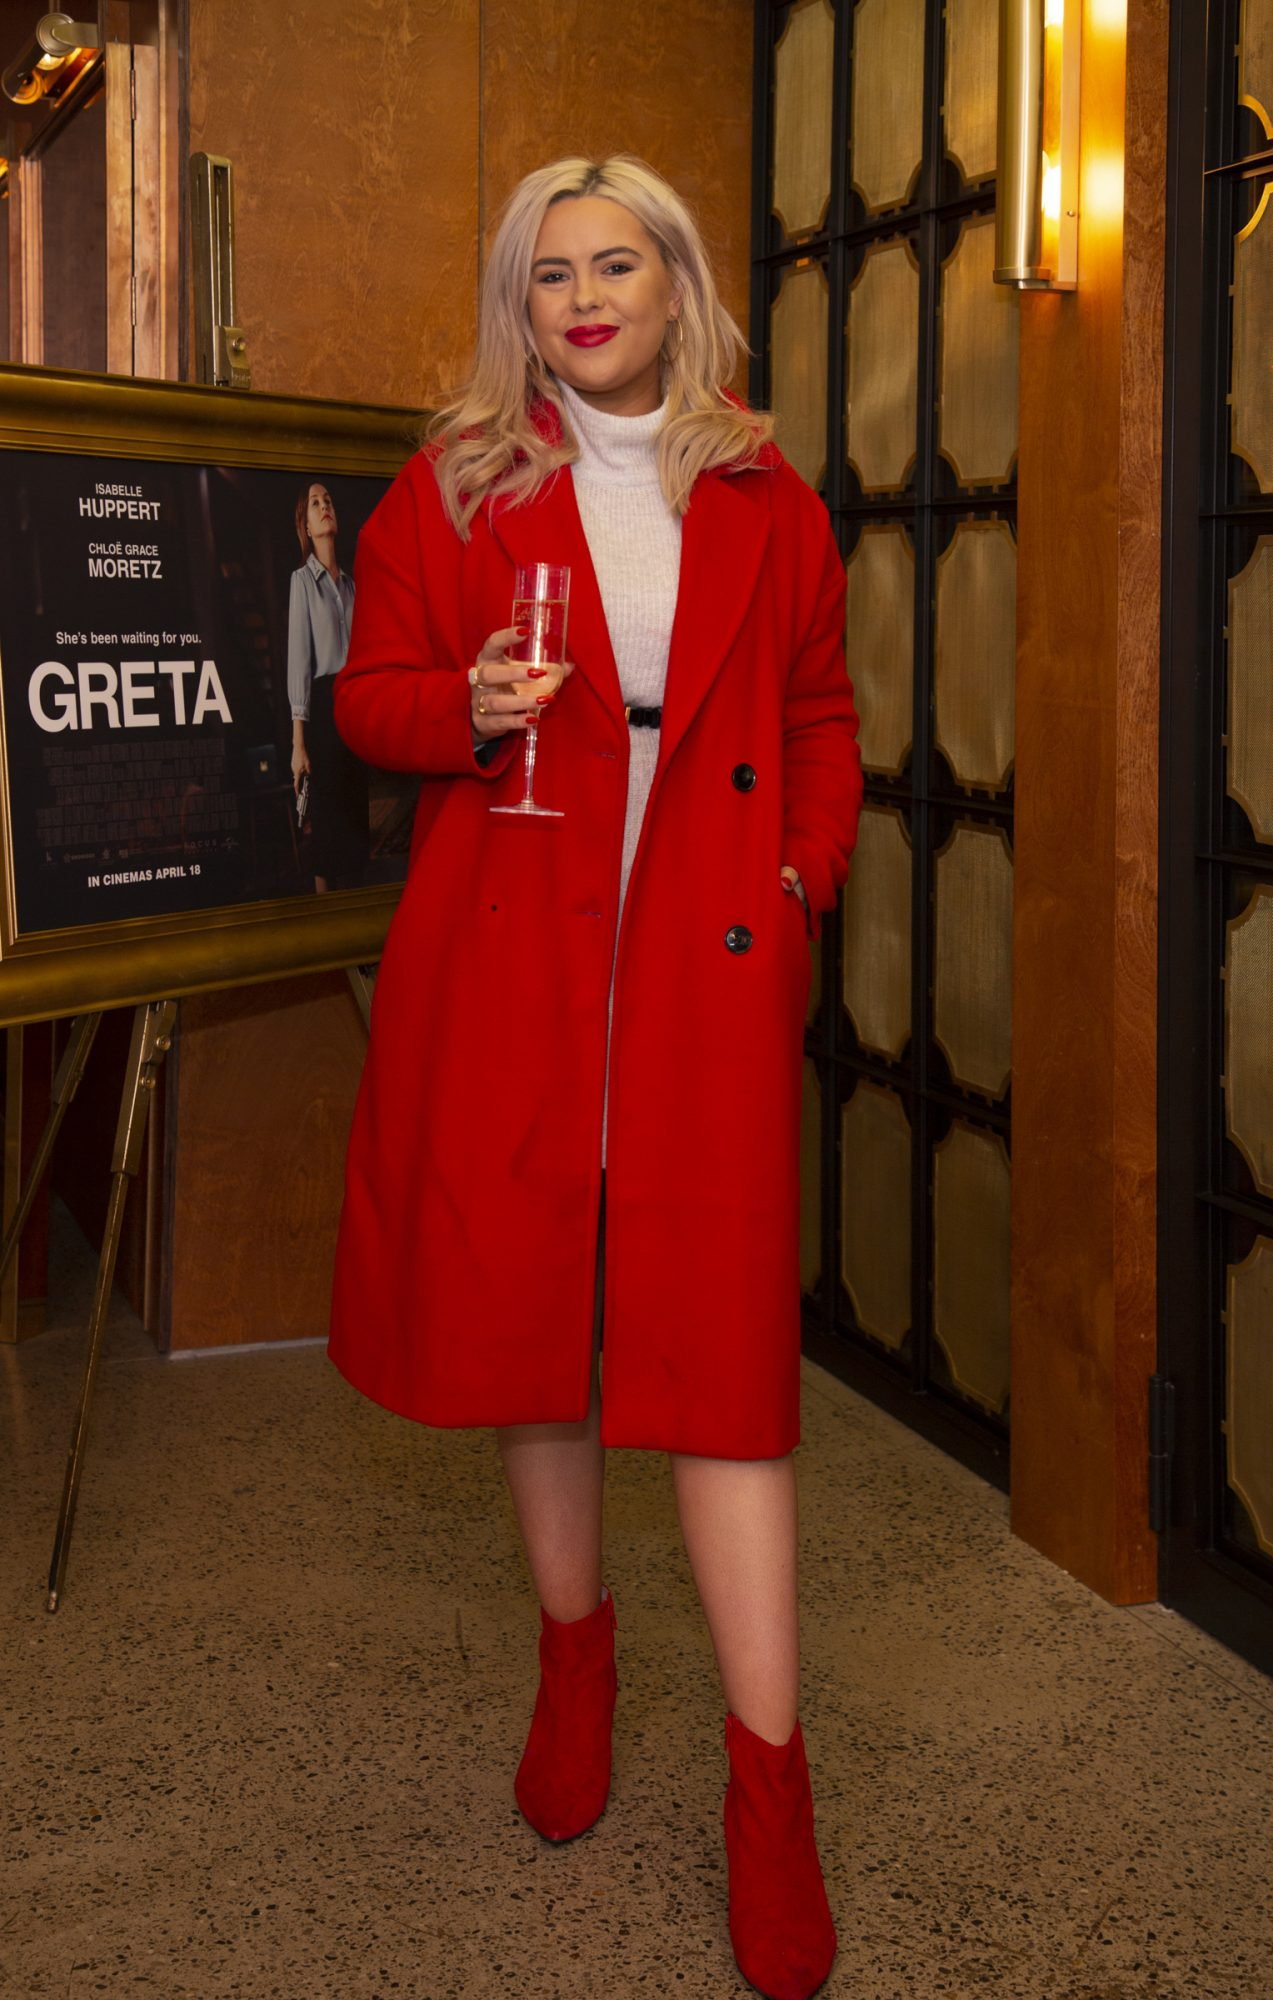 Ali Ryan pictured at a special preview screening of GRETA at The Stella Theatre, Ranelagh. GRETA, directed by Academy Award®-winner Neil Jordan and starring Chloë Grace Moretz and Isabelle Huppert, hits cinemas across Ireland this Thursday 18th April. Photo: Anthony Woods